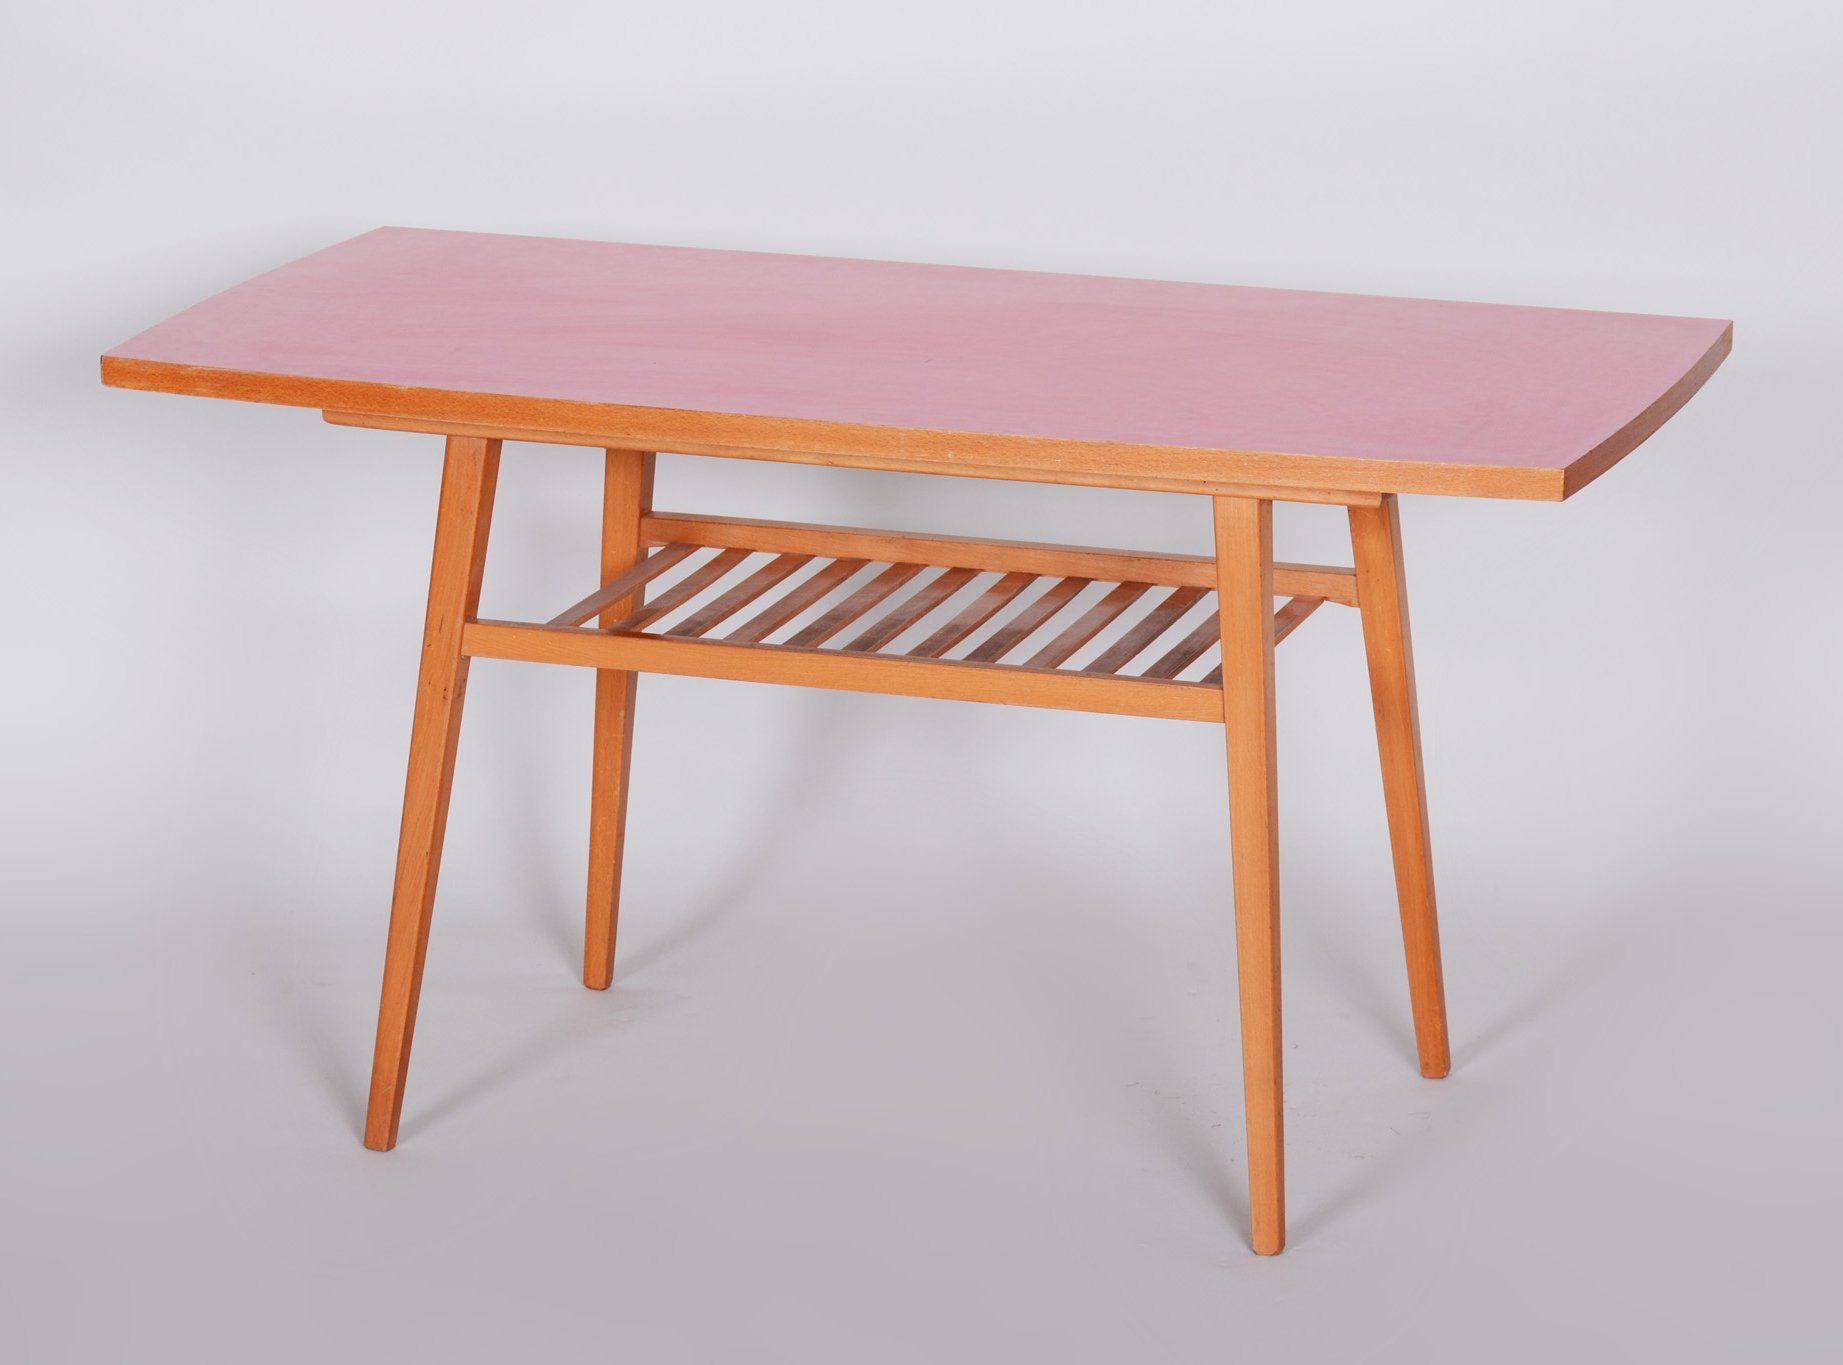 Image of: Small Midcentury Coffee Table In Beech Umakart Czechia 1960s 114575